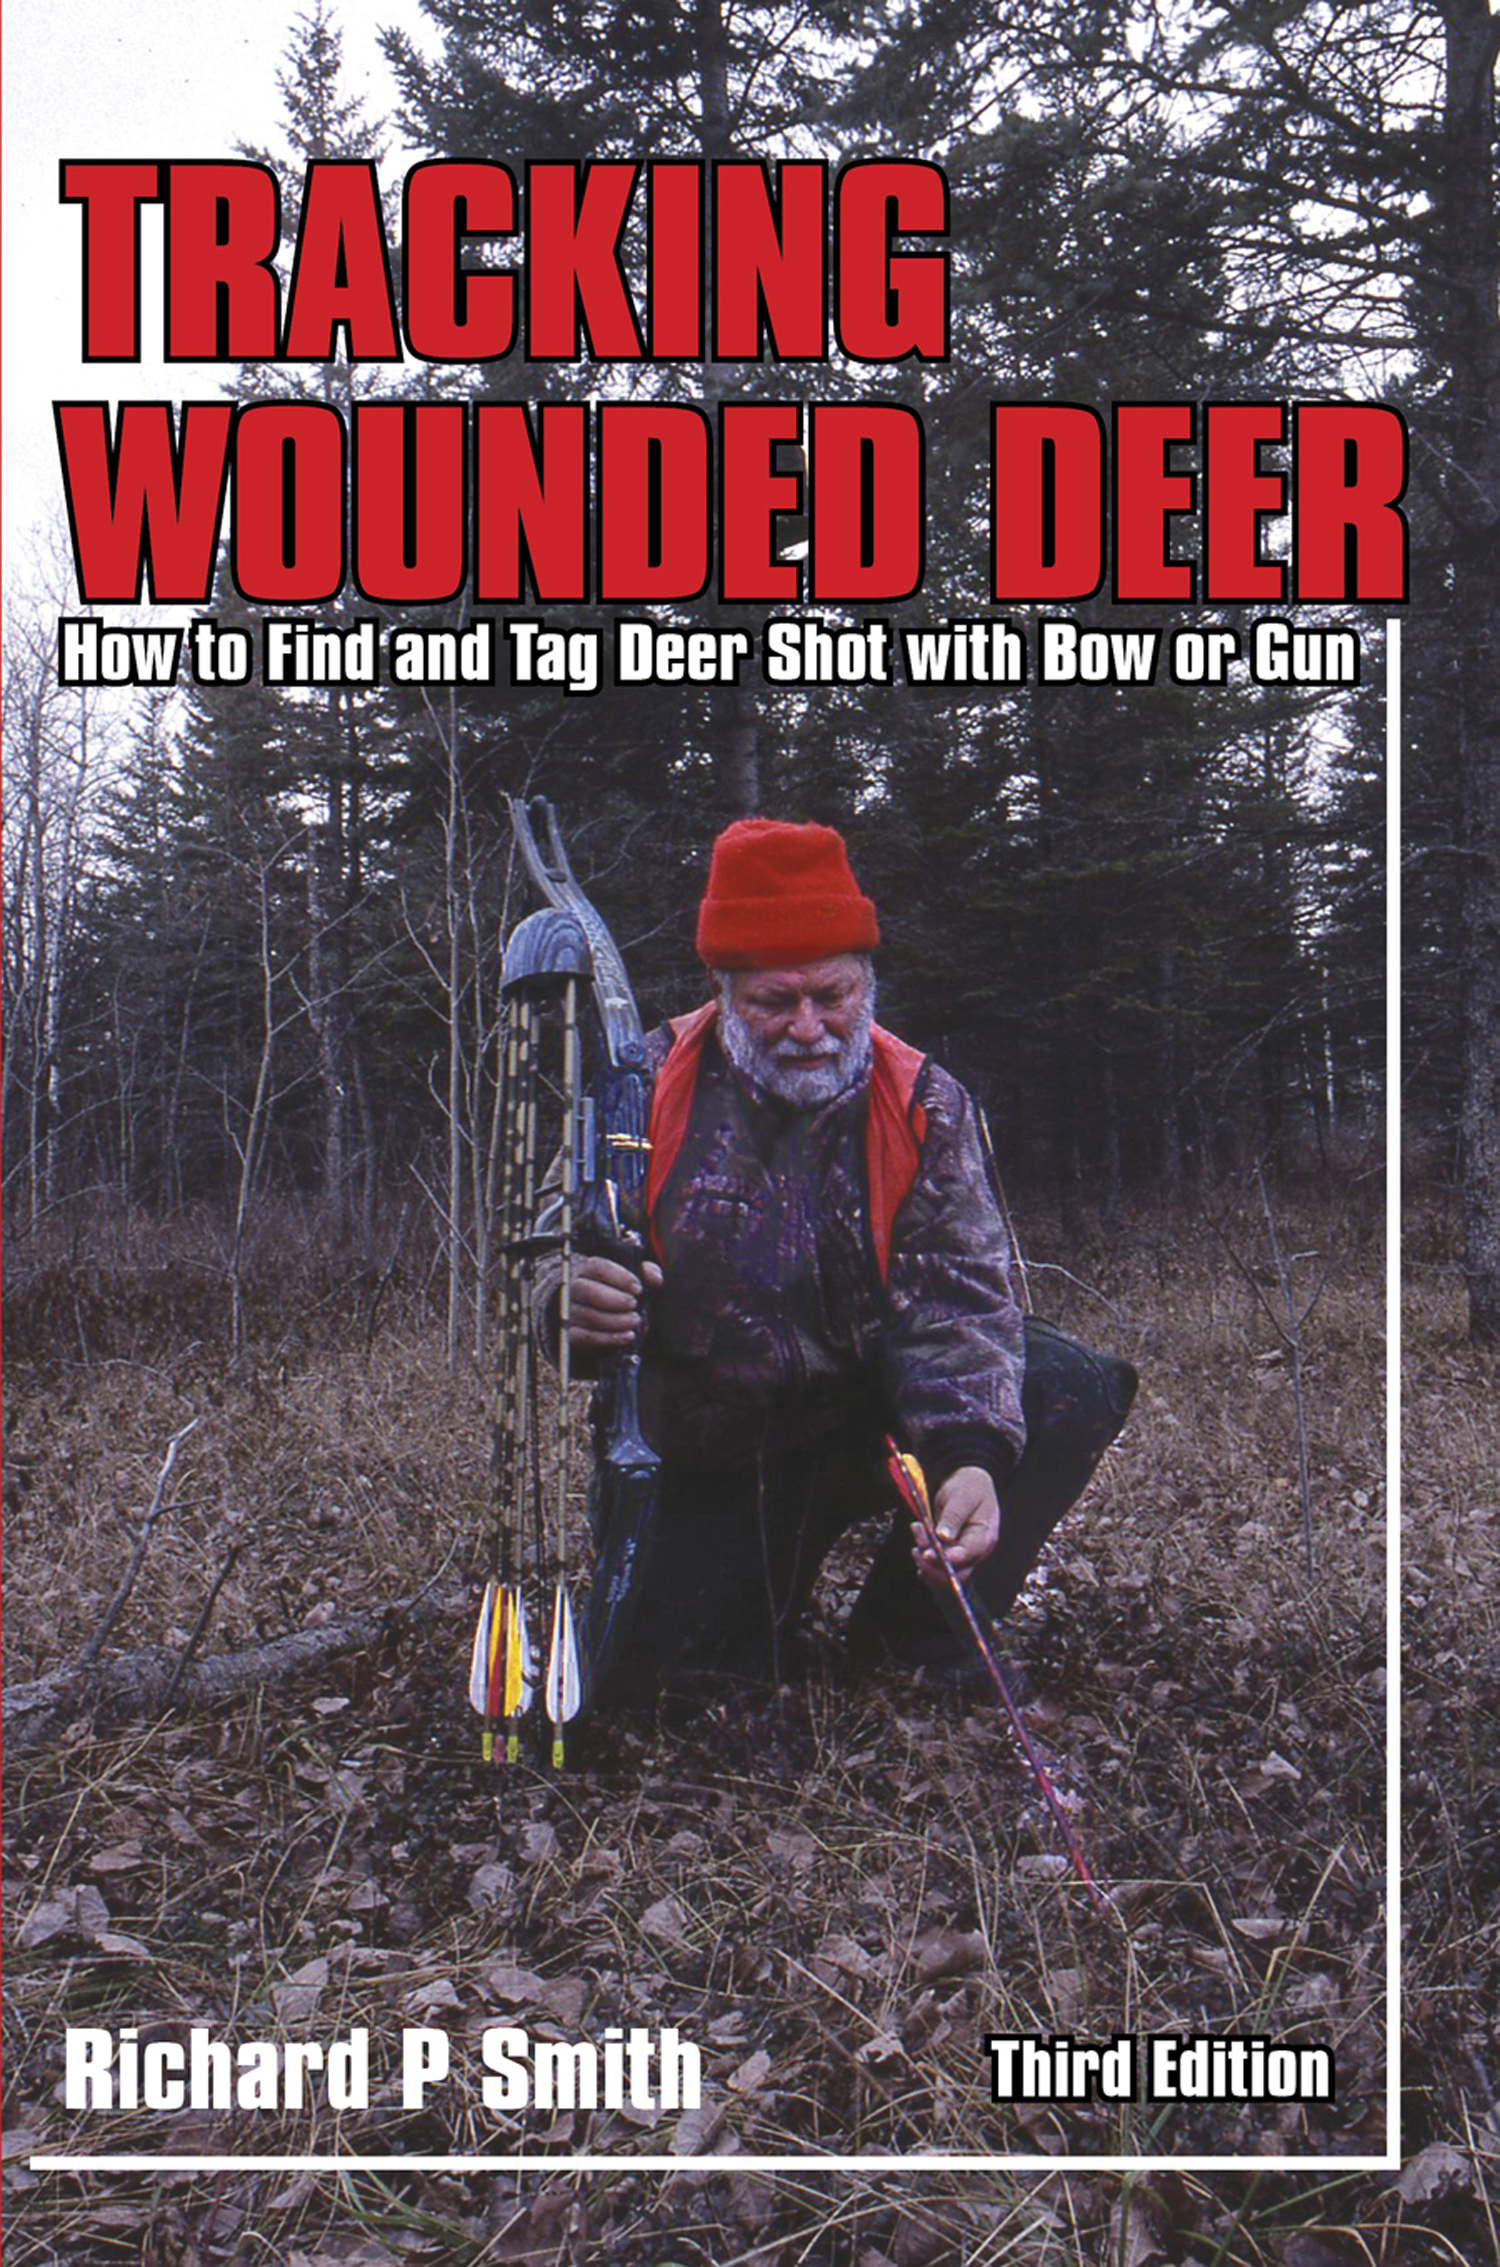 Tracking Wounded Deer, 3rd Edition Image